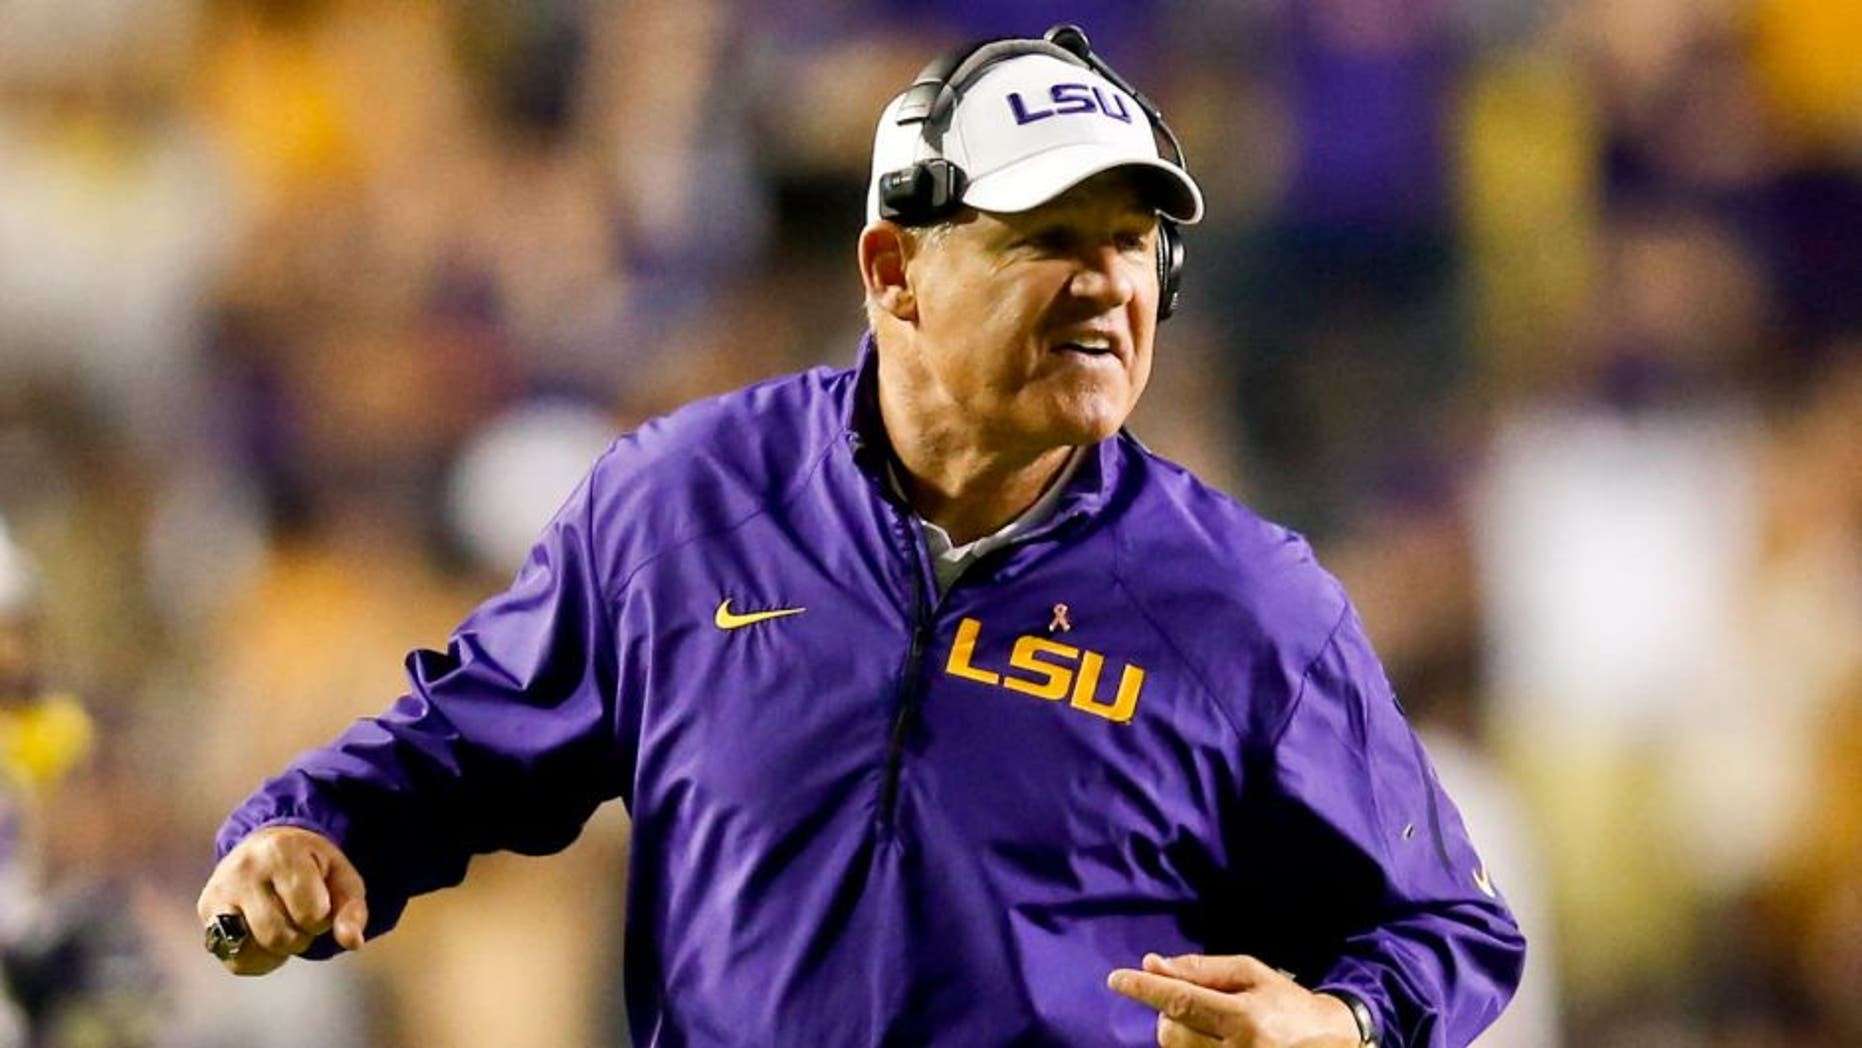 Oct 26, 2013; Baton Rouge, LA, USA; LSU Tigers head coach Les Miles against the Furman Paladins during the second half of a game at Tiger Stadium. LSU defeated Furman 48-16. Mandatory Credit: Derick E. Hingle-USA TODAY Sports